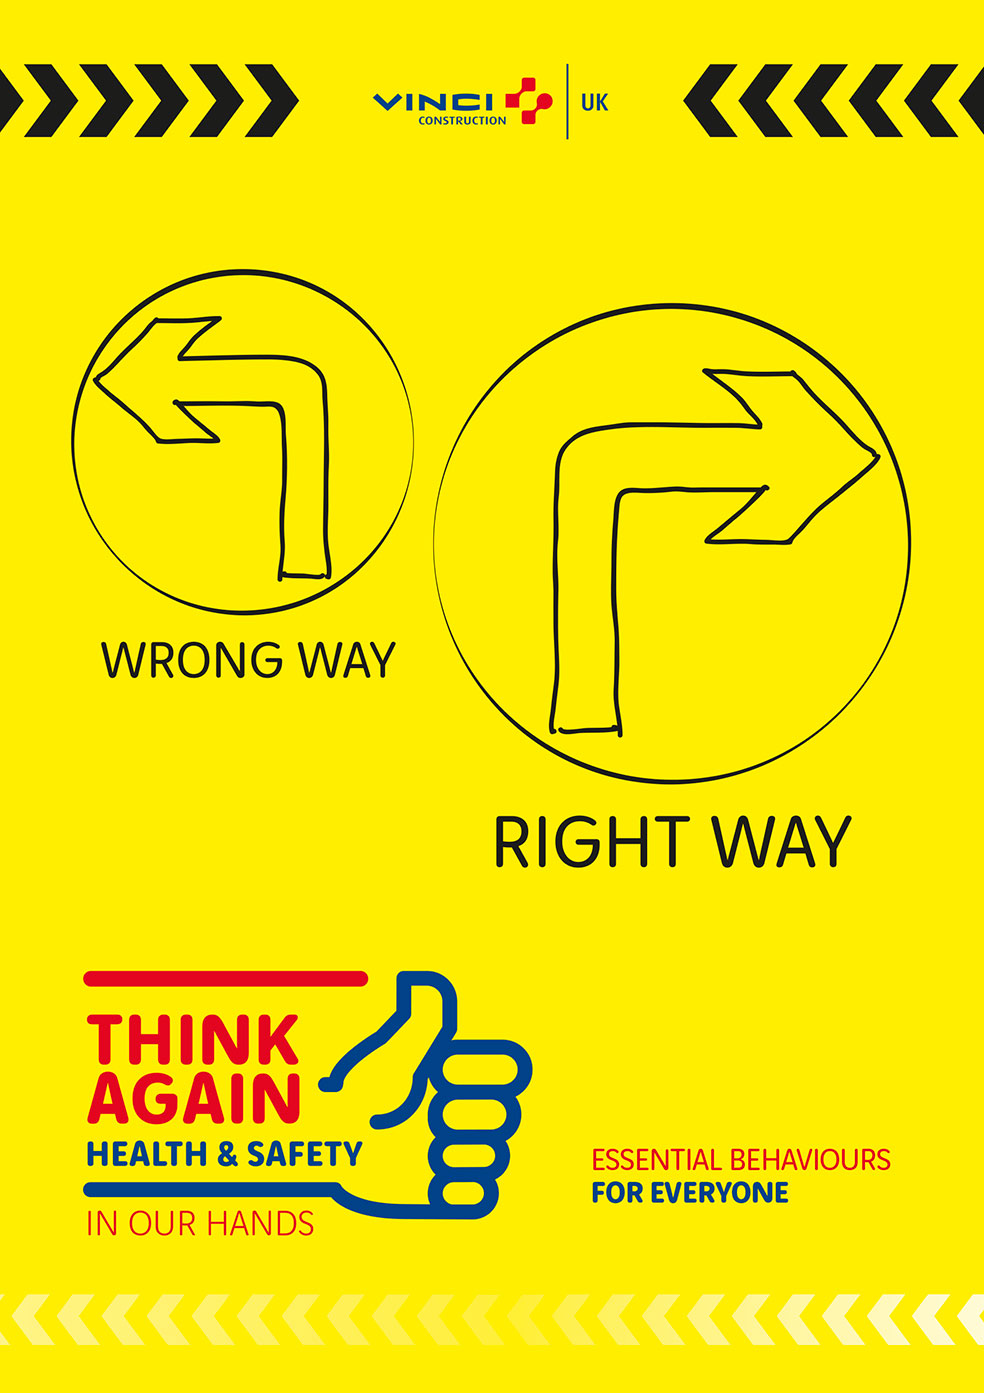 VINCI Construction UK launches new Health & Safety strategy – THINK AGAIN